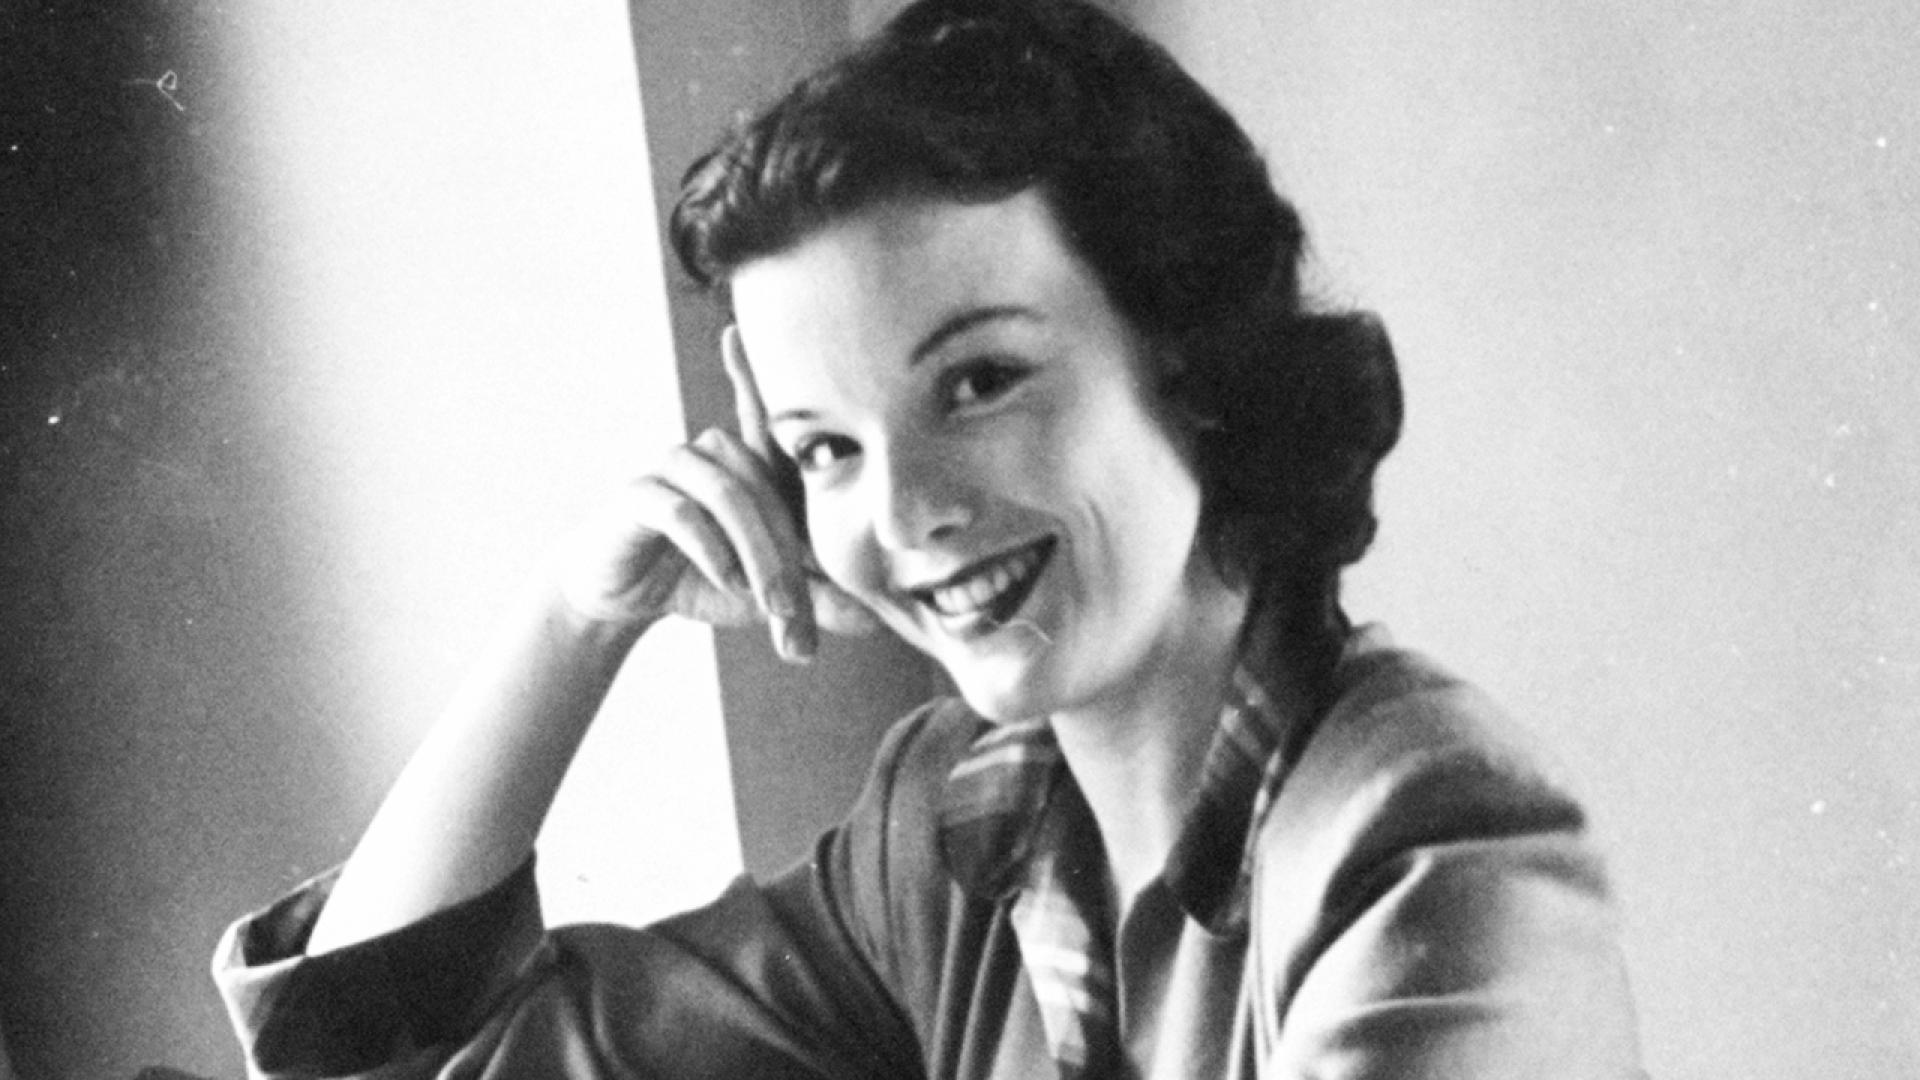 Nanette Fabray was not only famous for her work in acting, but also her humanitarian efforts.